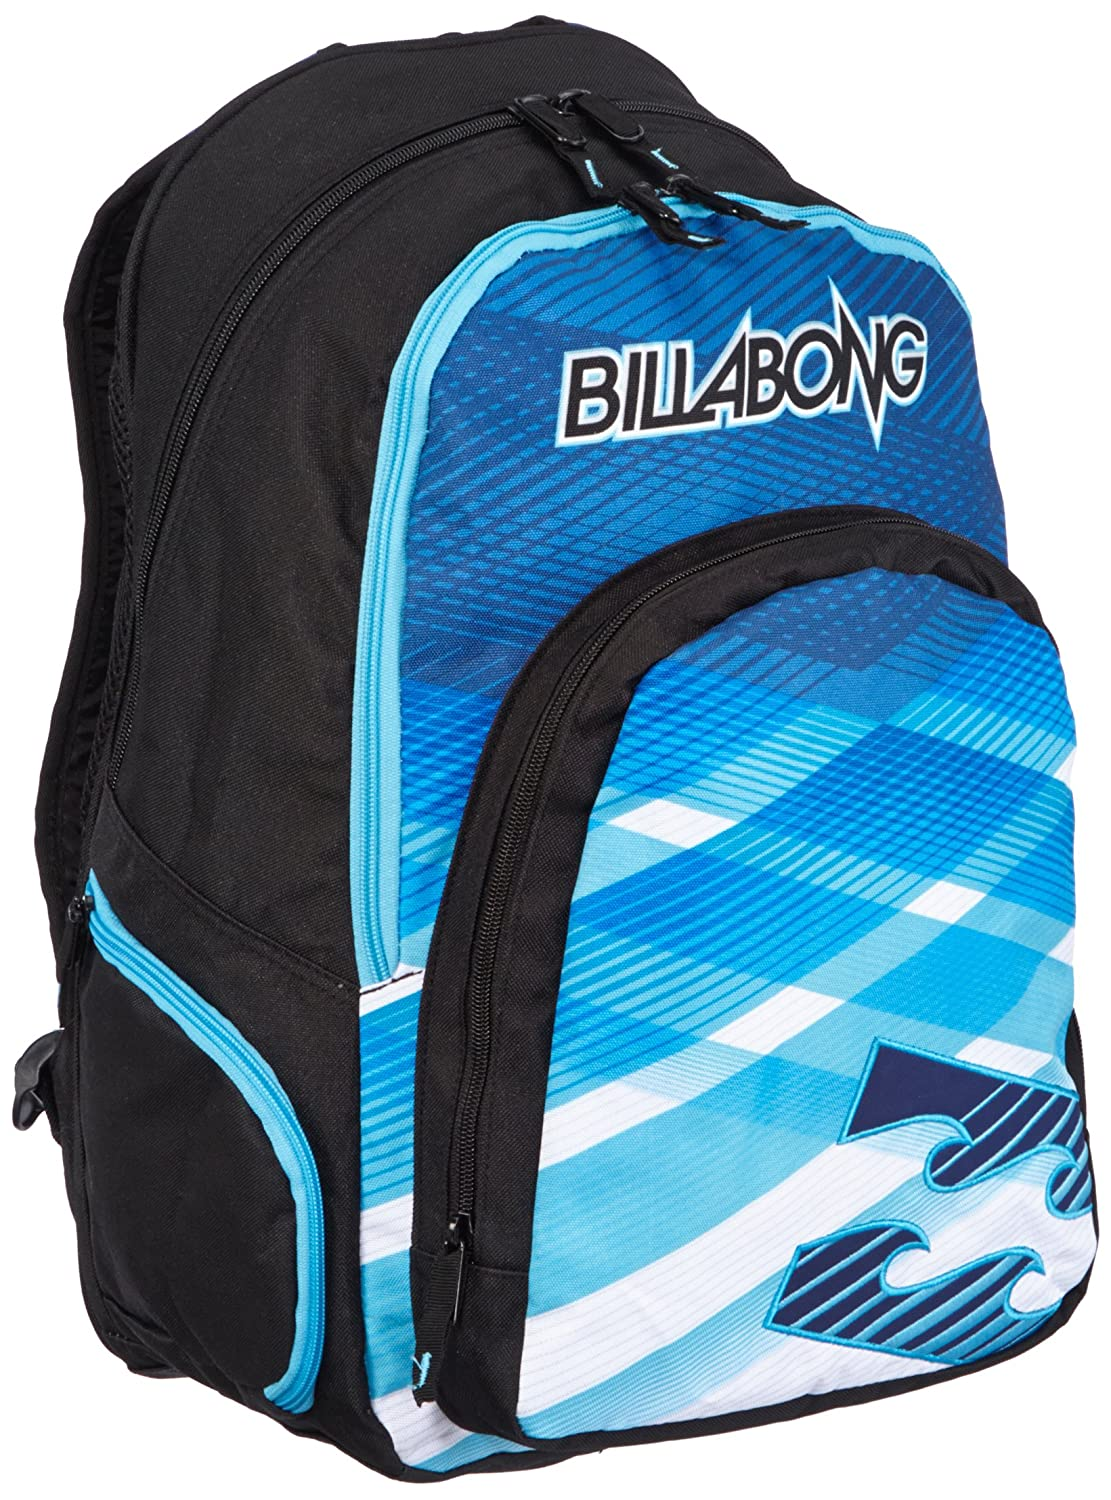 Billabong Mission - Mochila escolar, color azul - Talla única: Amazon.es: Equipaje